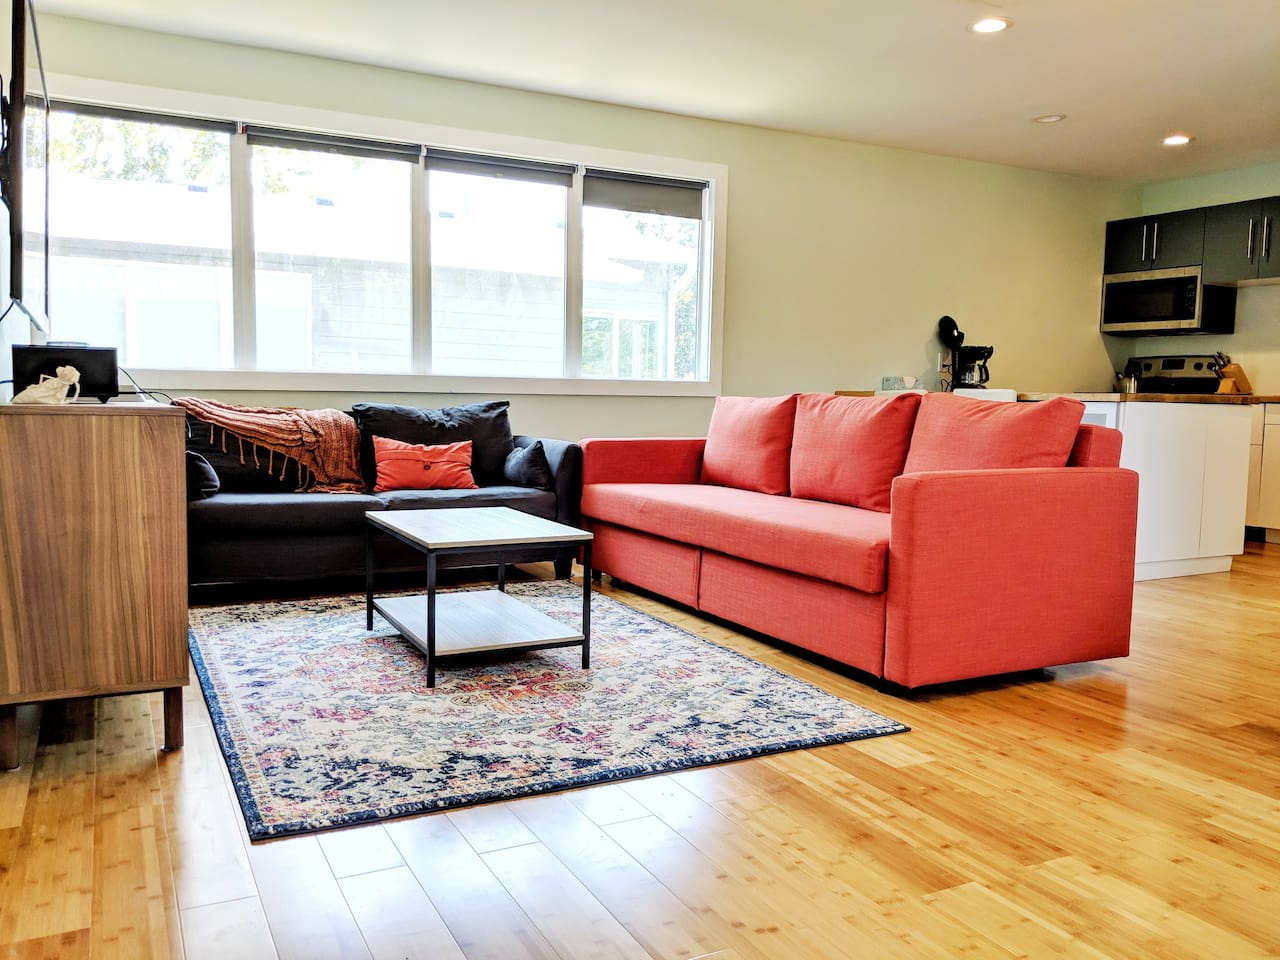 Plenty of seating with TV and Bluetooth speakers for relaxing.